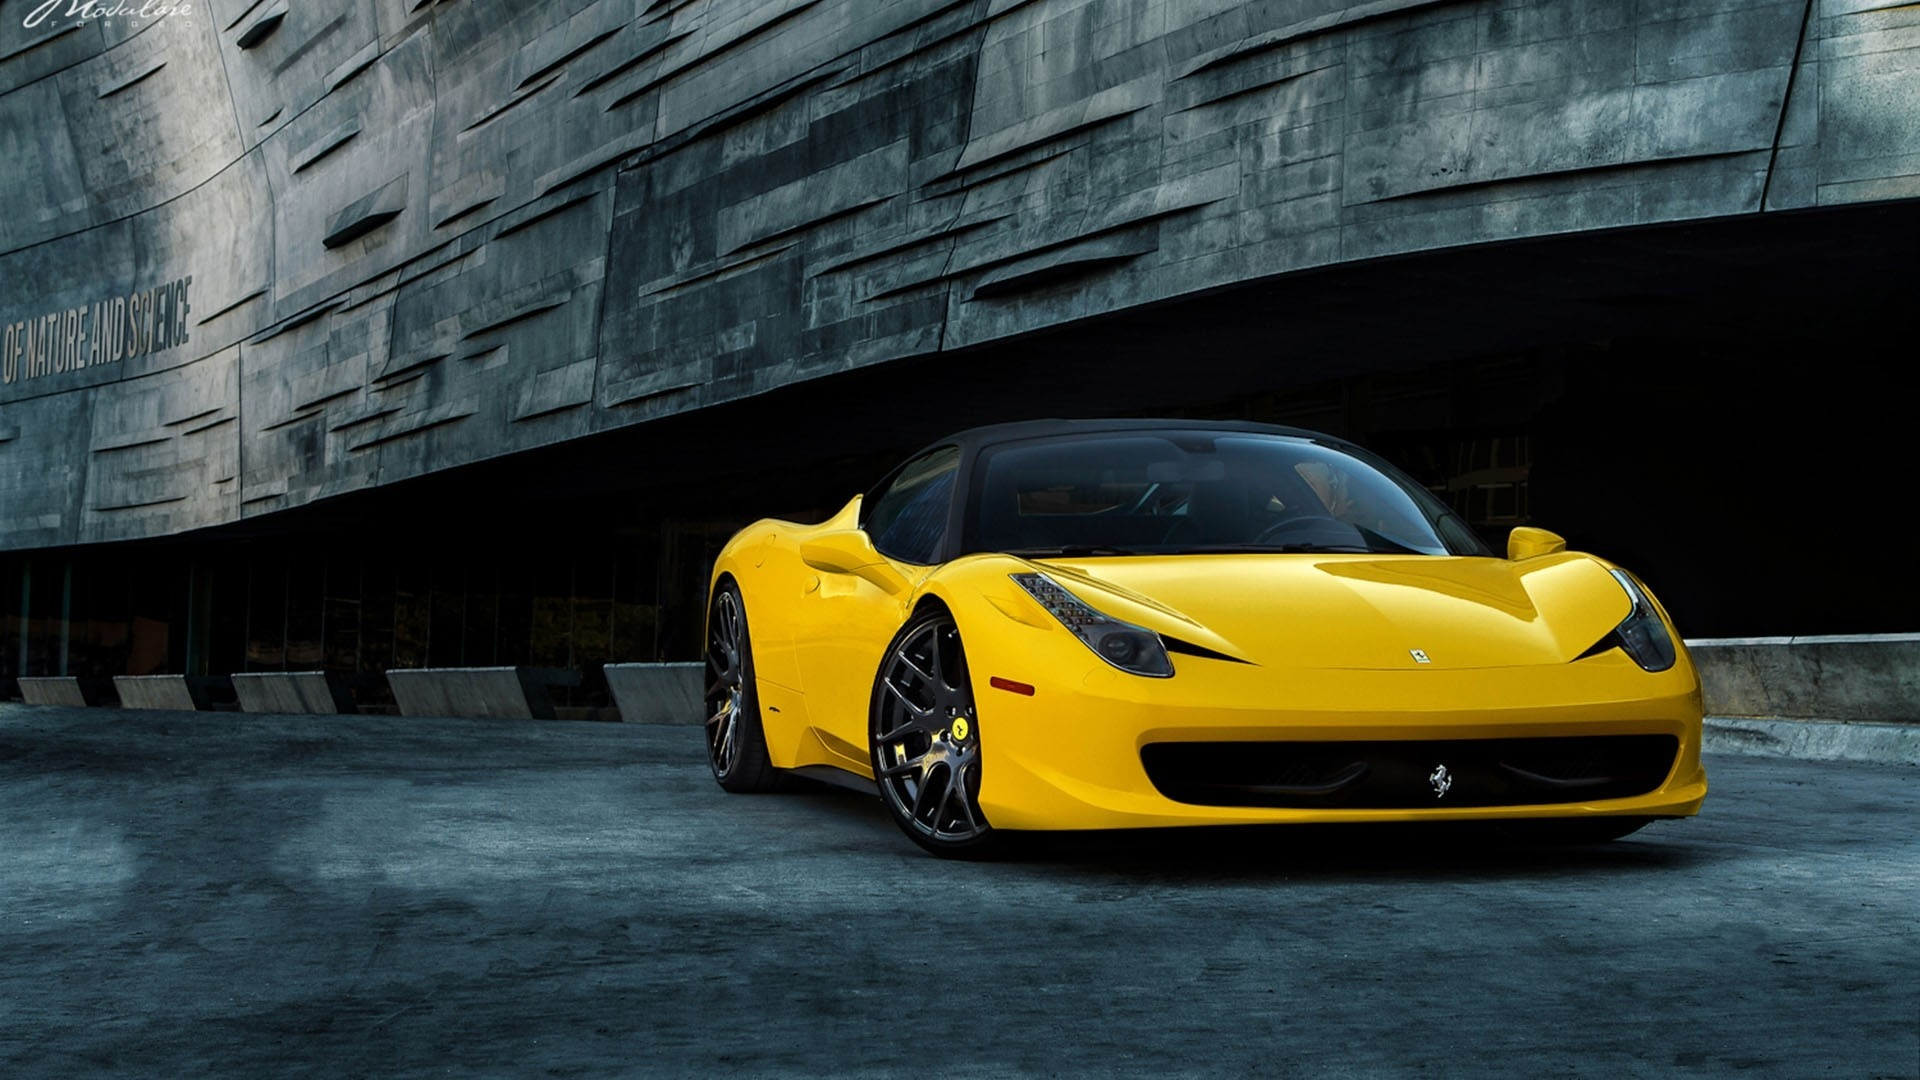 1920x1080 - Ferrari 458 Italia Wallpapers 26